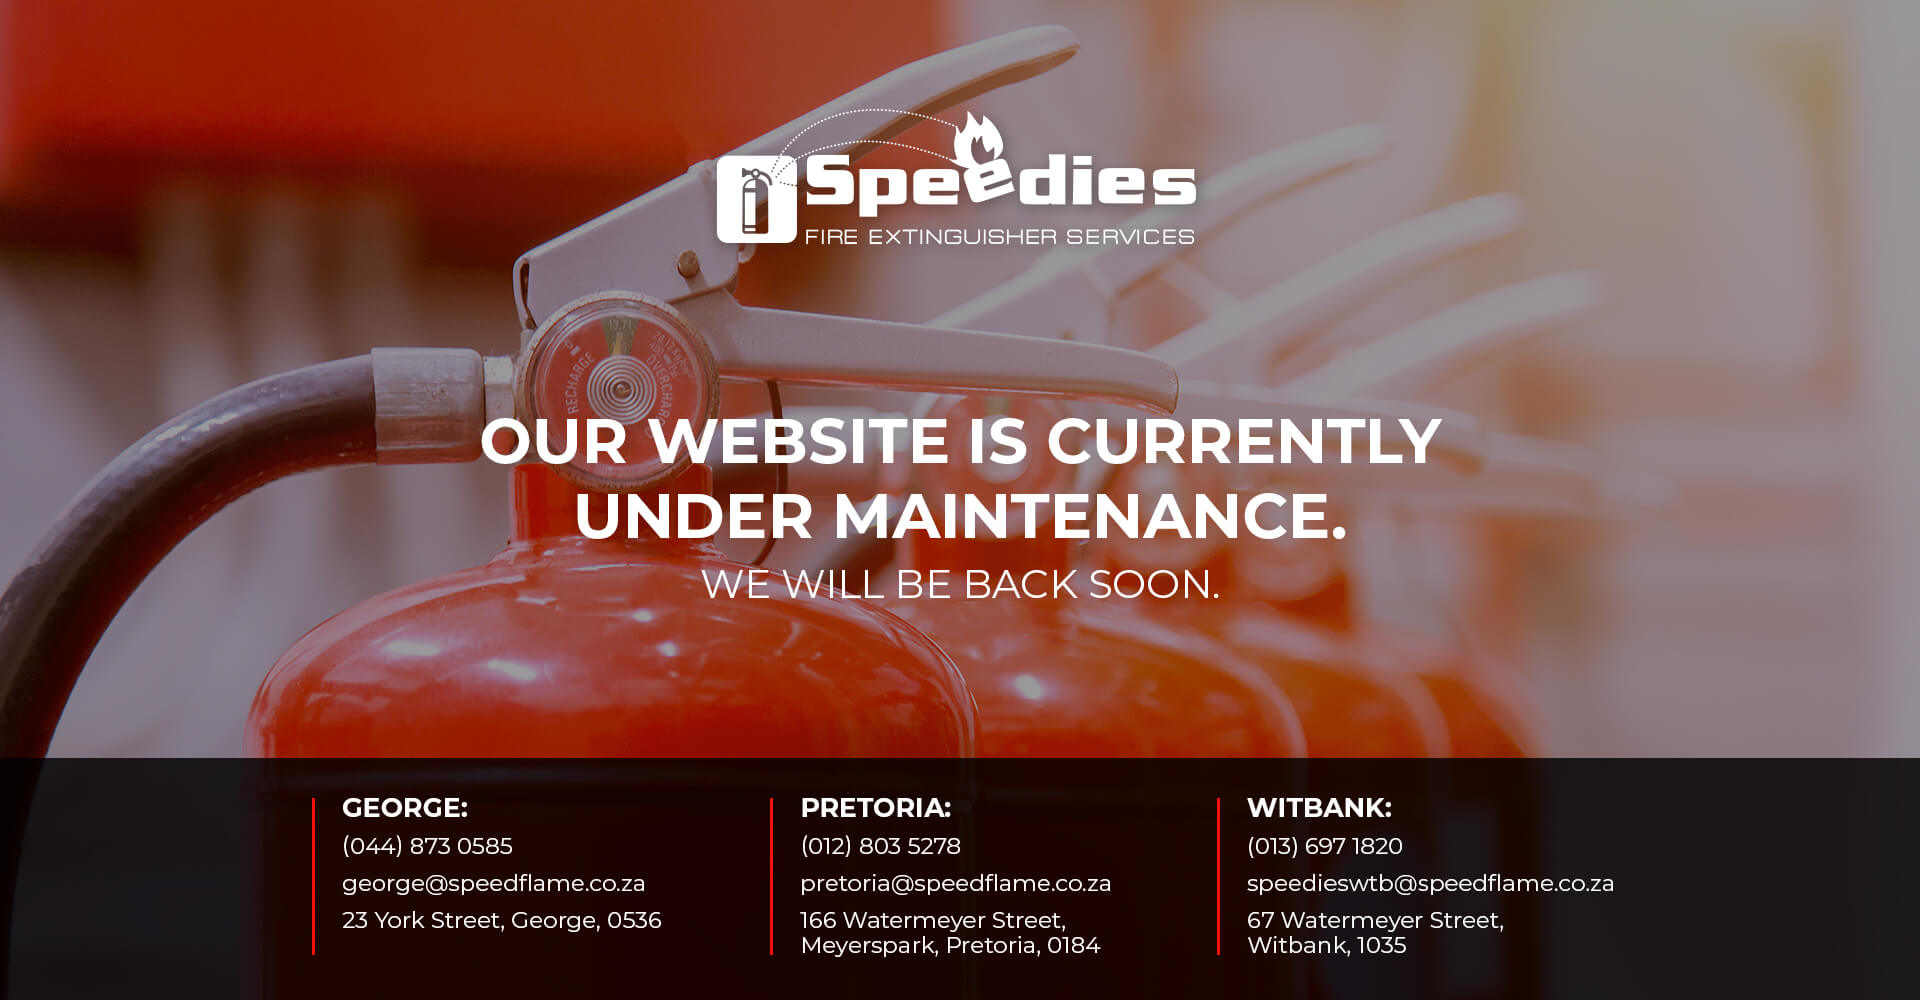 Speedies Fire is current under maintenance